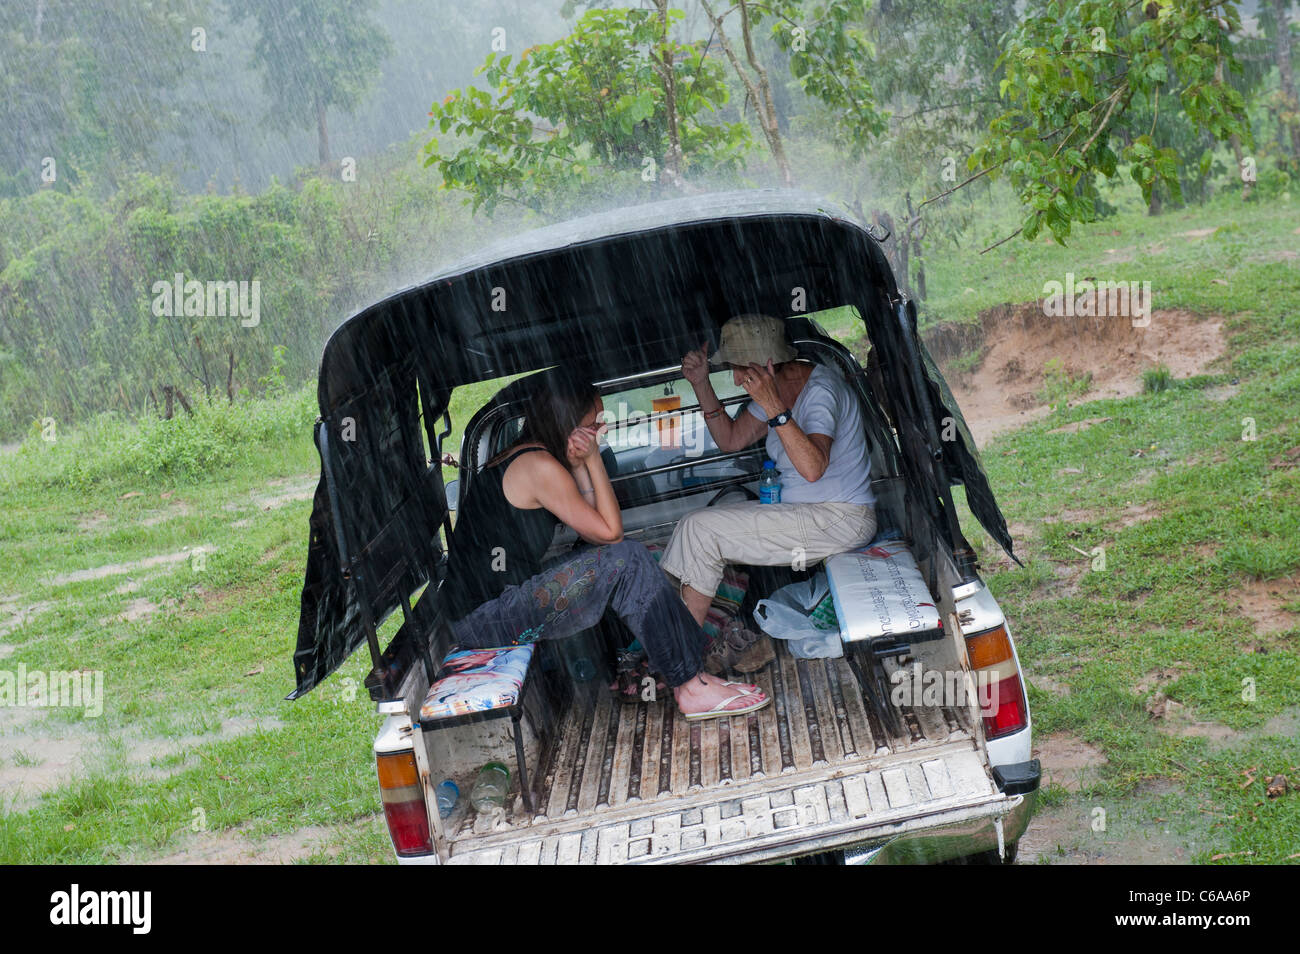 Two women take shelter from heavy rain in the back of a 4x4 vehicle Thailand Asia - Stock Image